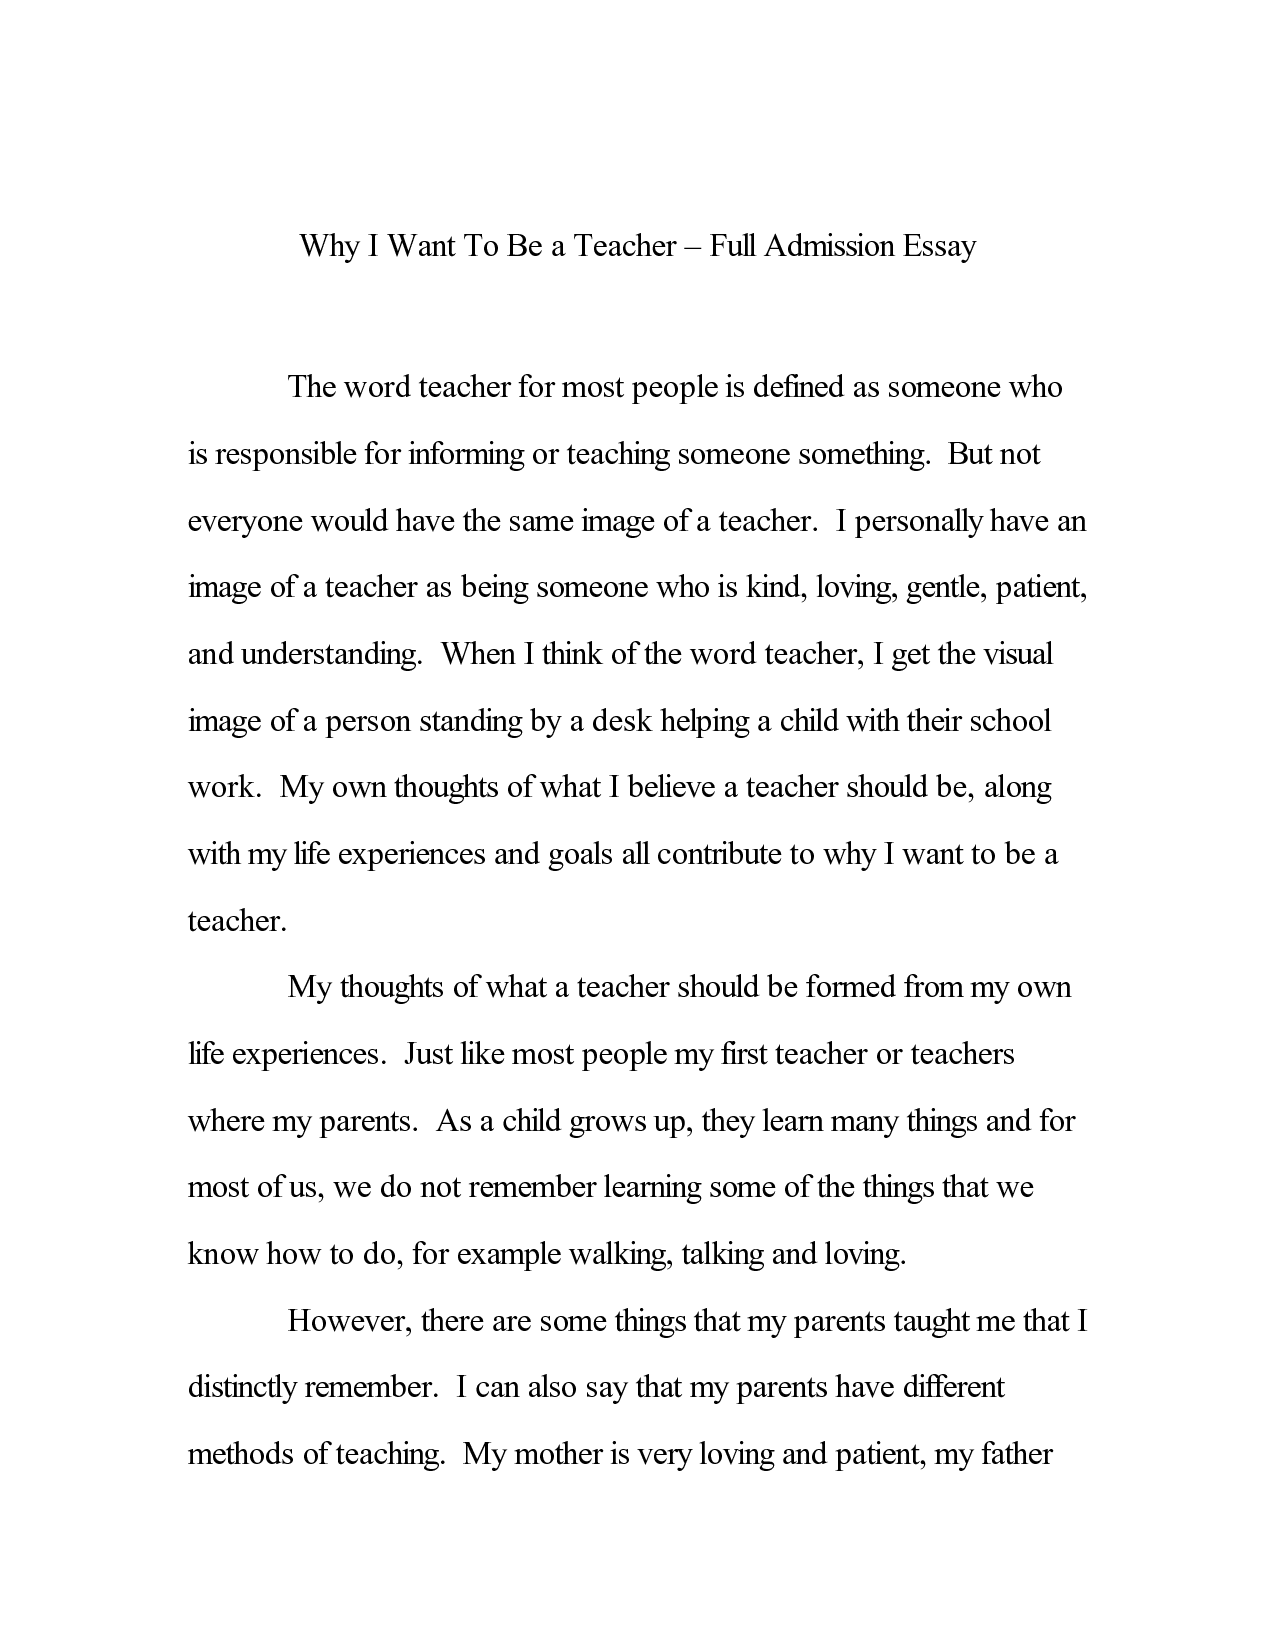 004 Writing College Application Essay Rare A Topics To Write On Tips For About Yourself Full